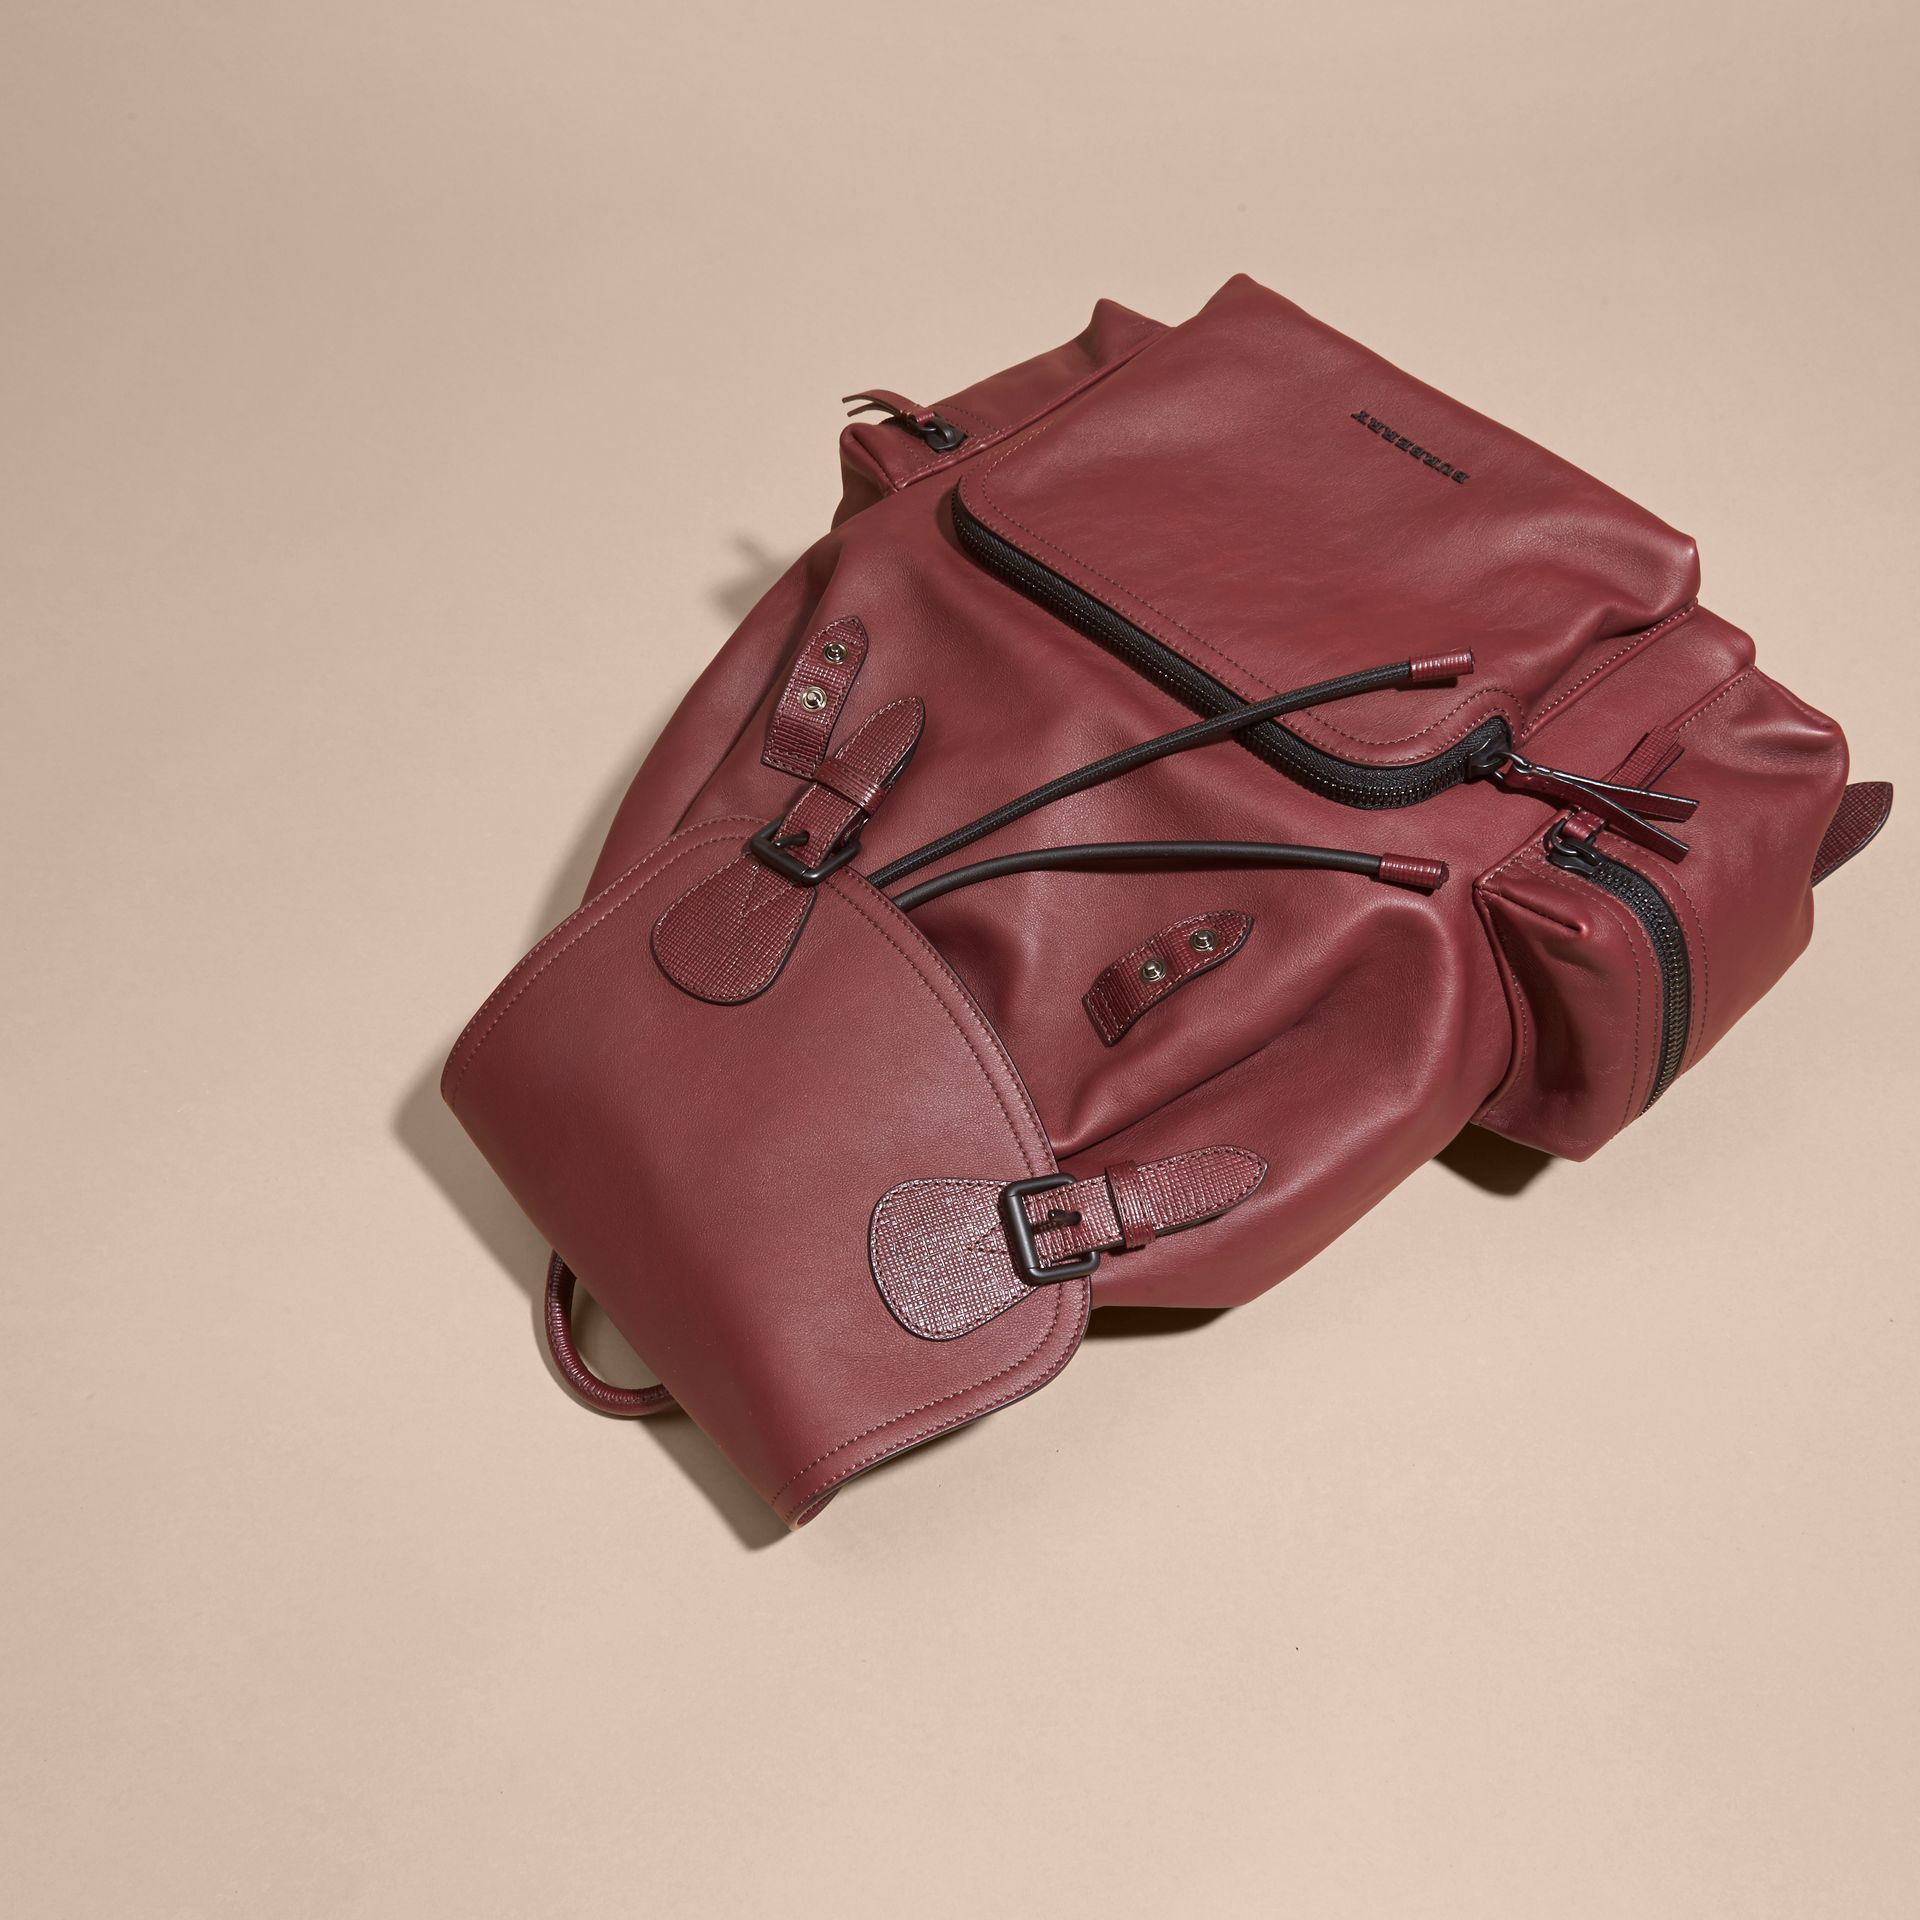 Burgundy red The Large Rucksack in Water-repellent Leather Burgundy Red - gallery image 8